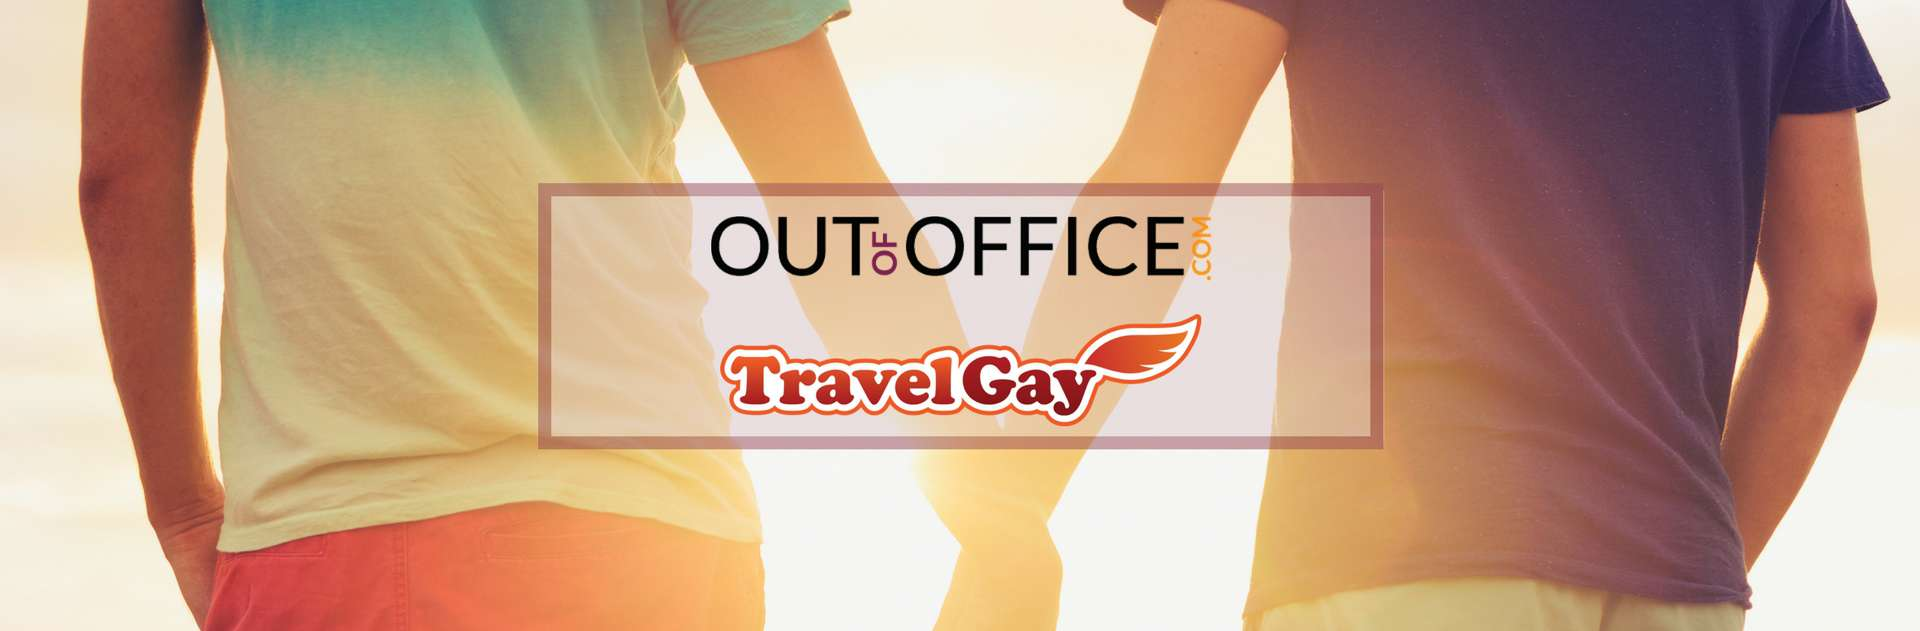 OutOfOffice.com acquires Travel Gay